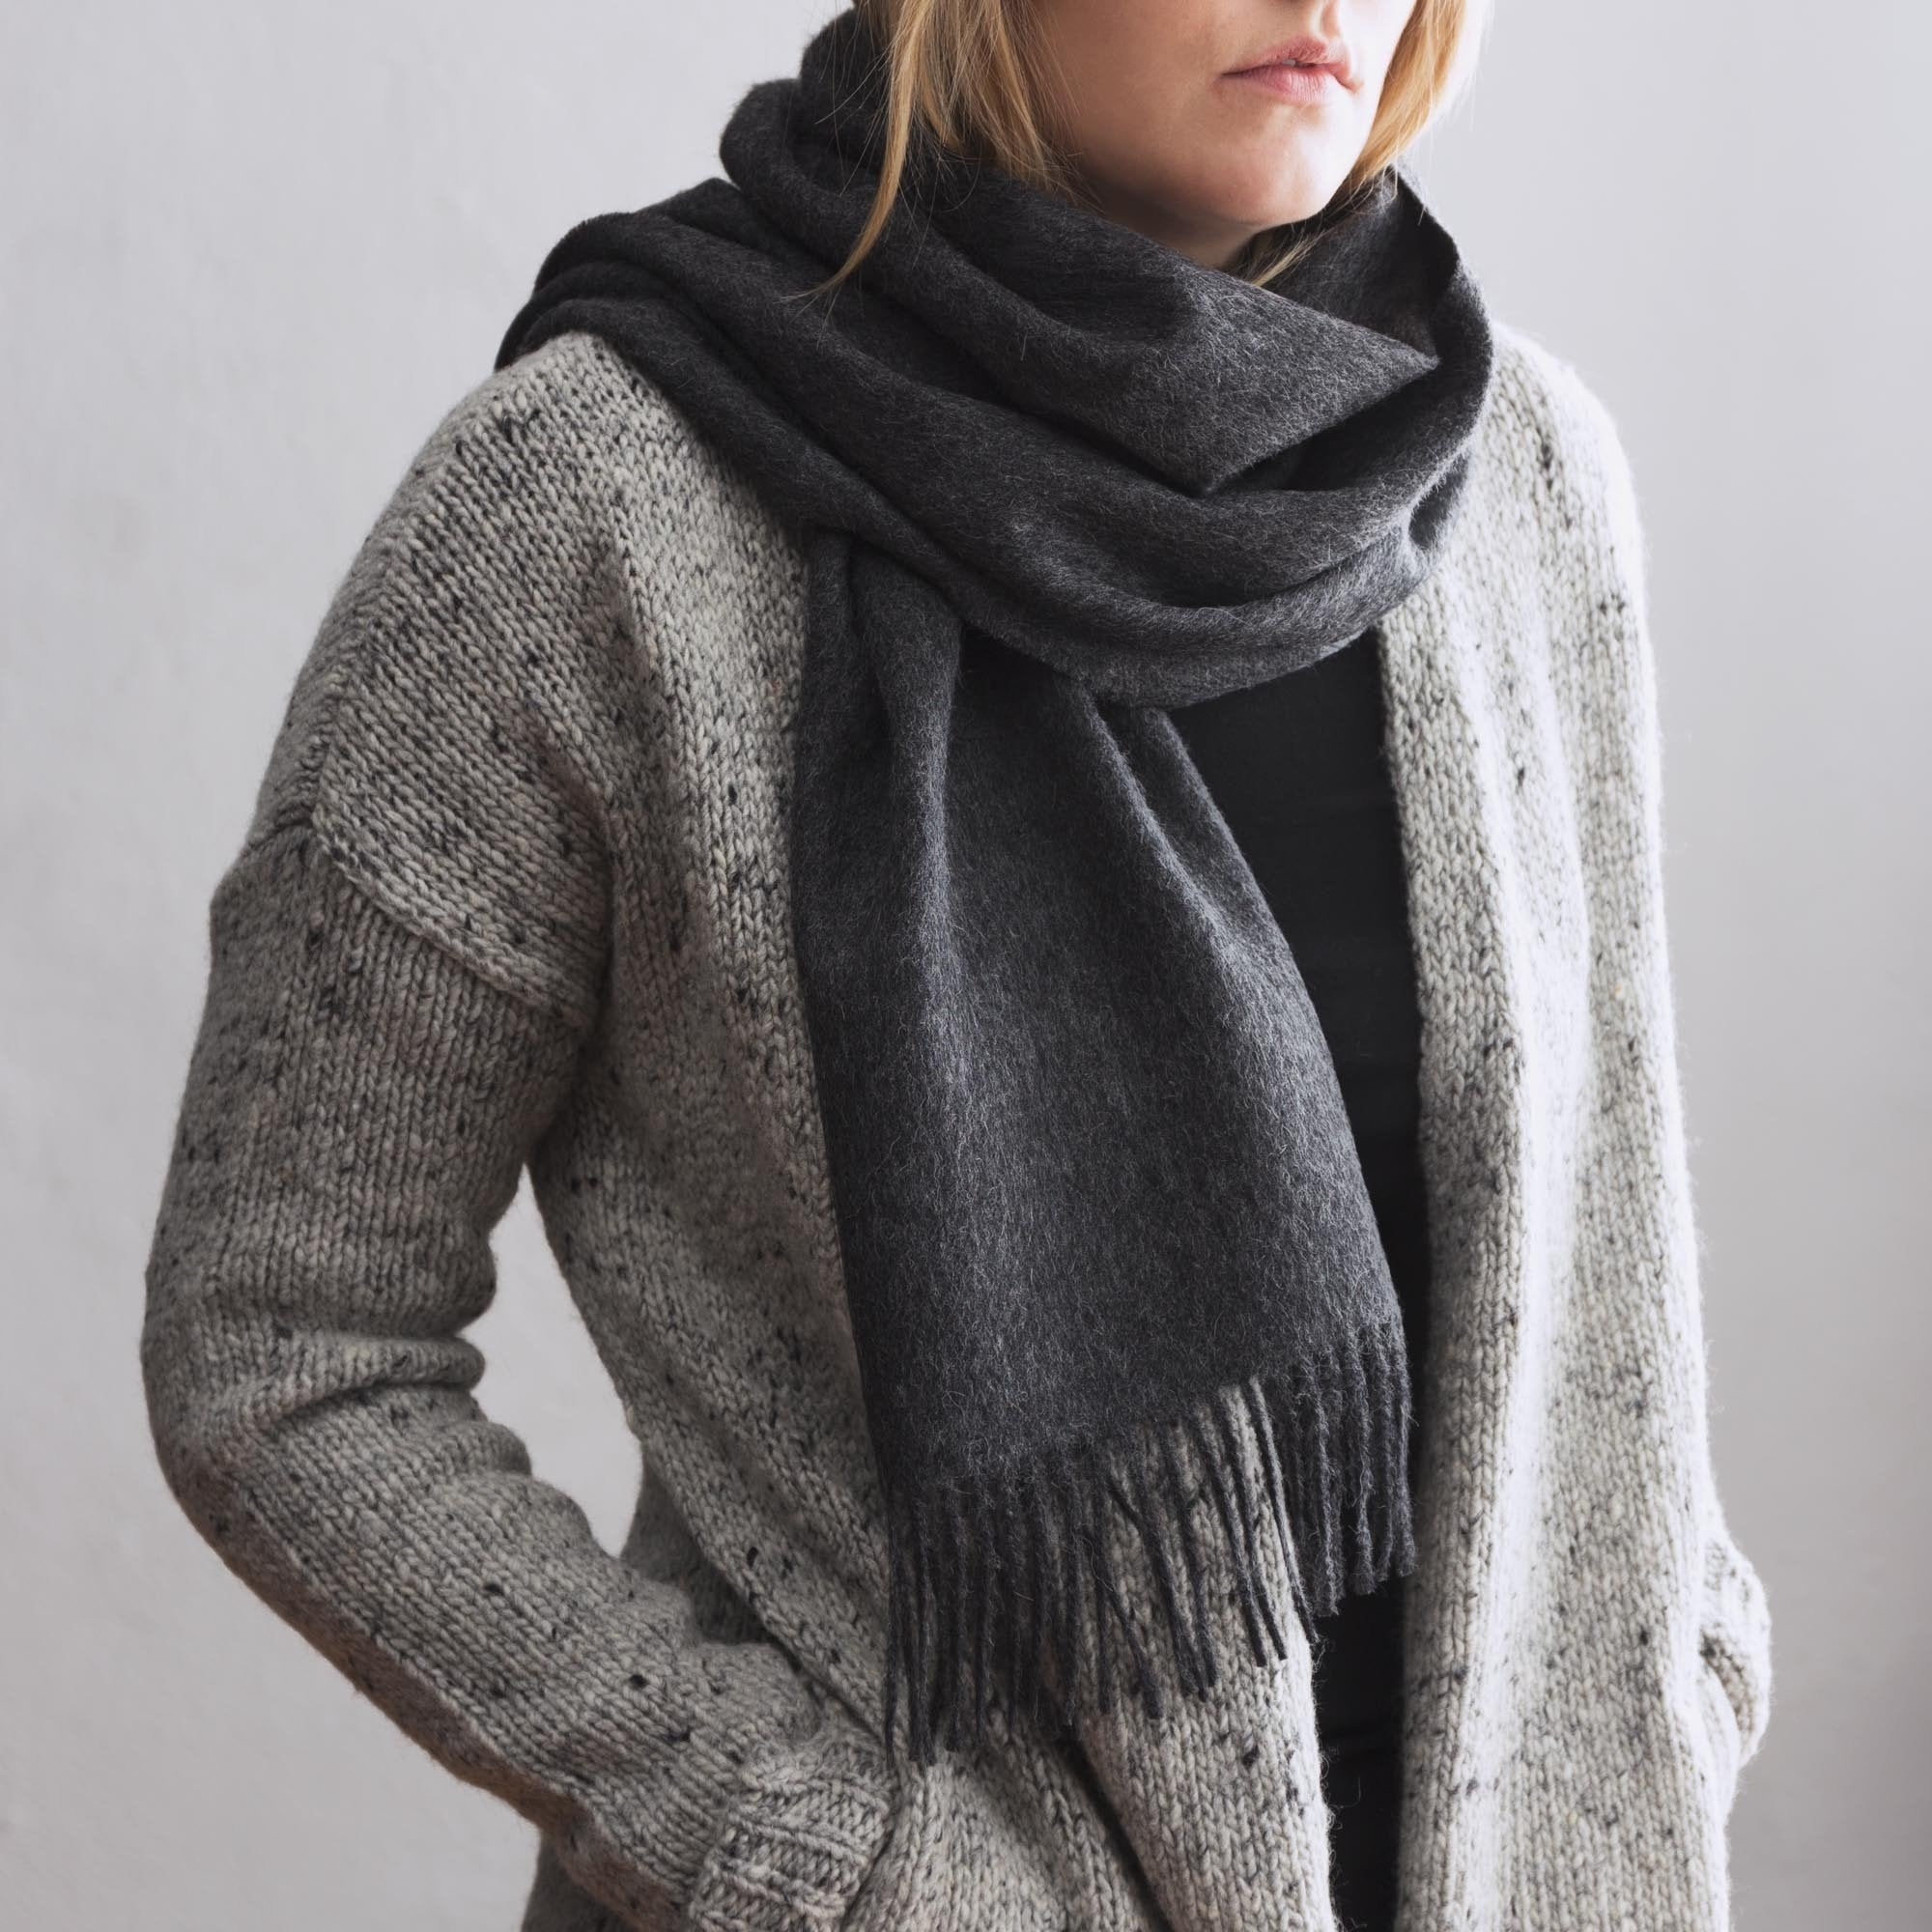 Limon scarf, charcoal, 100% baby alpaca wool